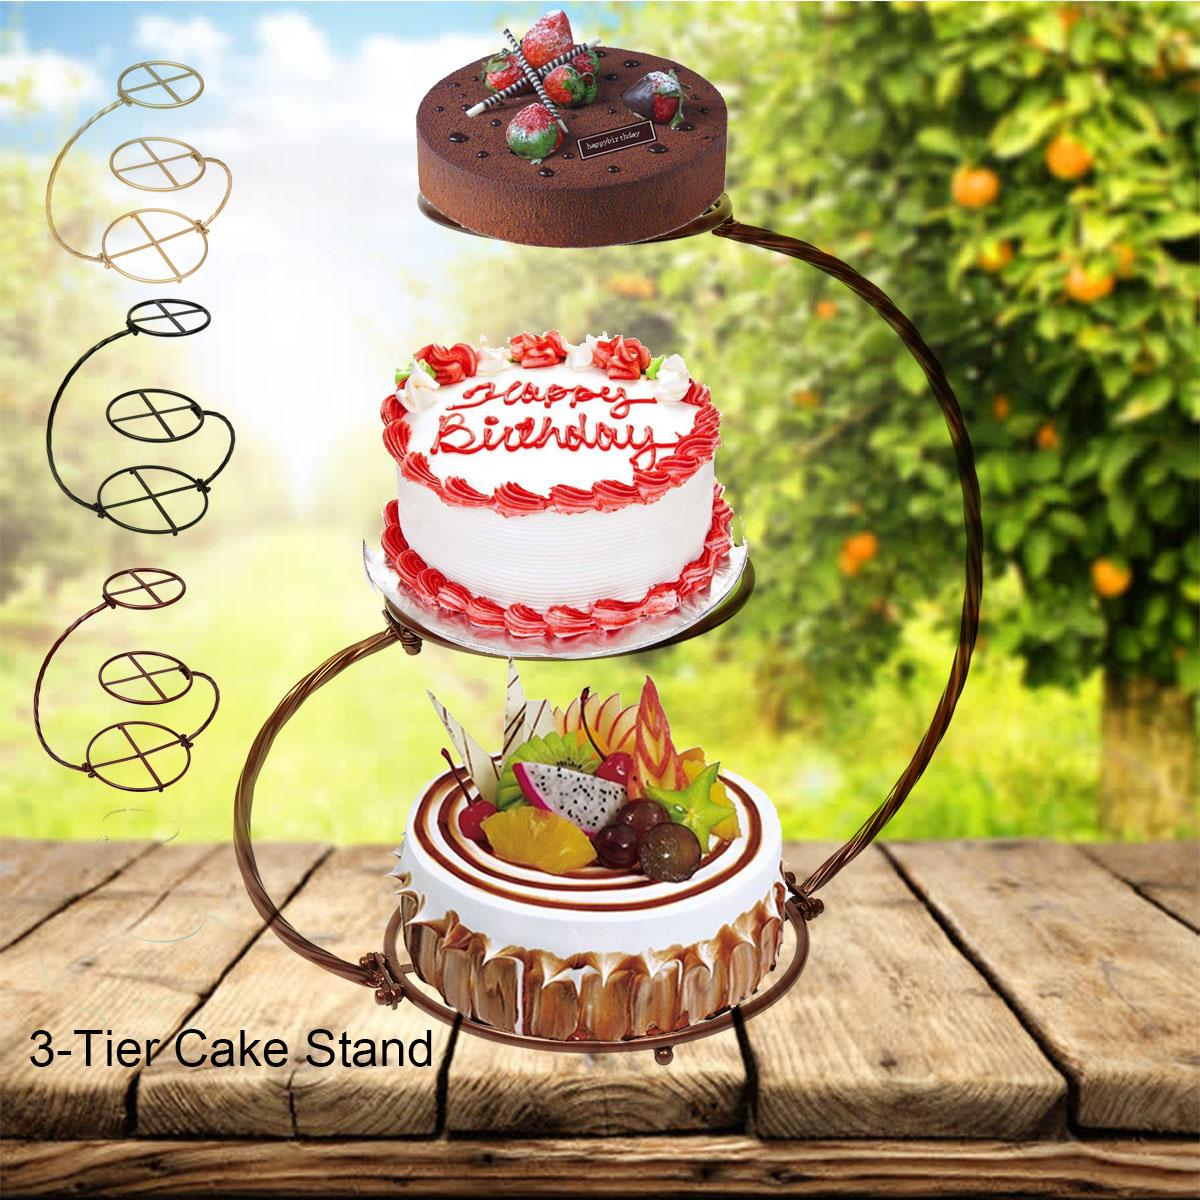 3 Tier Cake Stand Metal For Wedding 60cm Height Wedding Birthday Party Supply Display Decorations